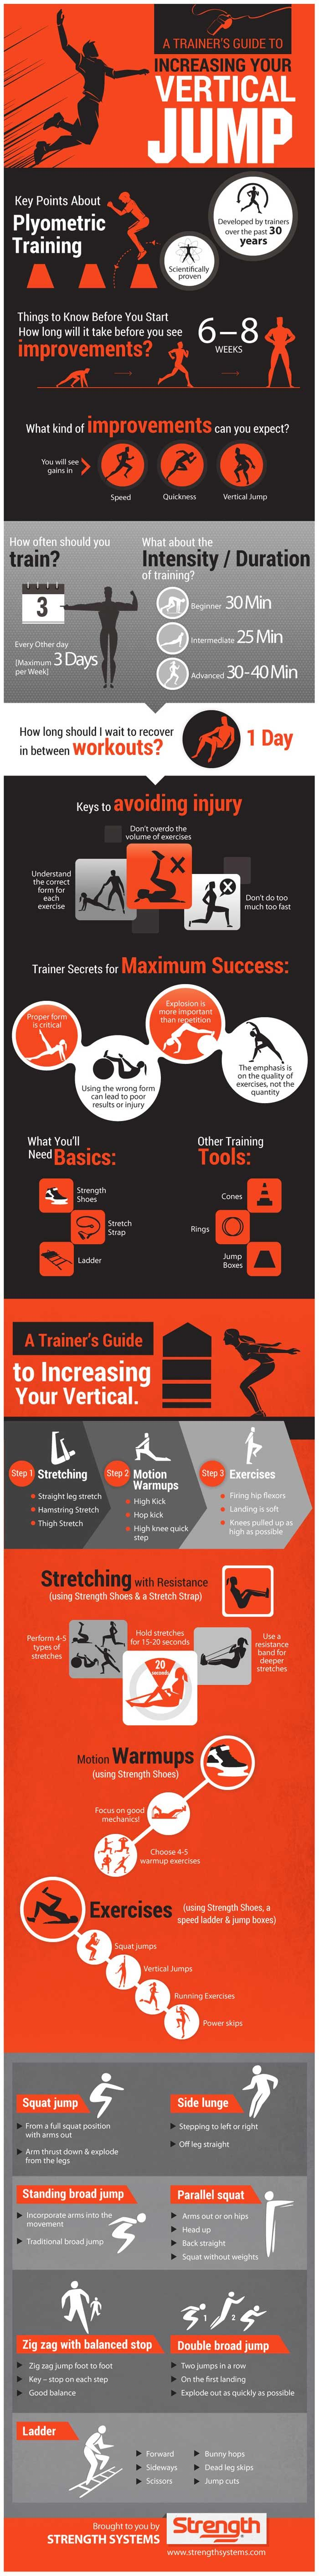 Tips To Increase Your Vertical Jump Tipsographic Jump Workout Volleyball Workouts Plyometrics